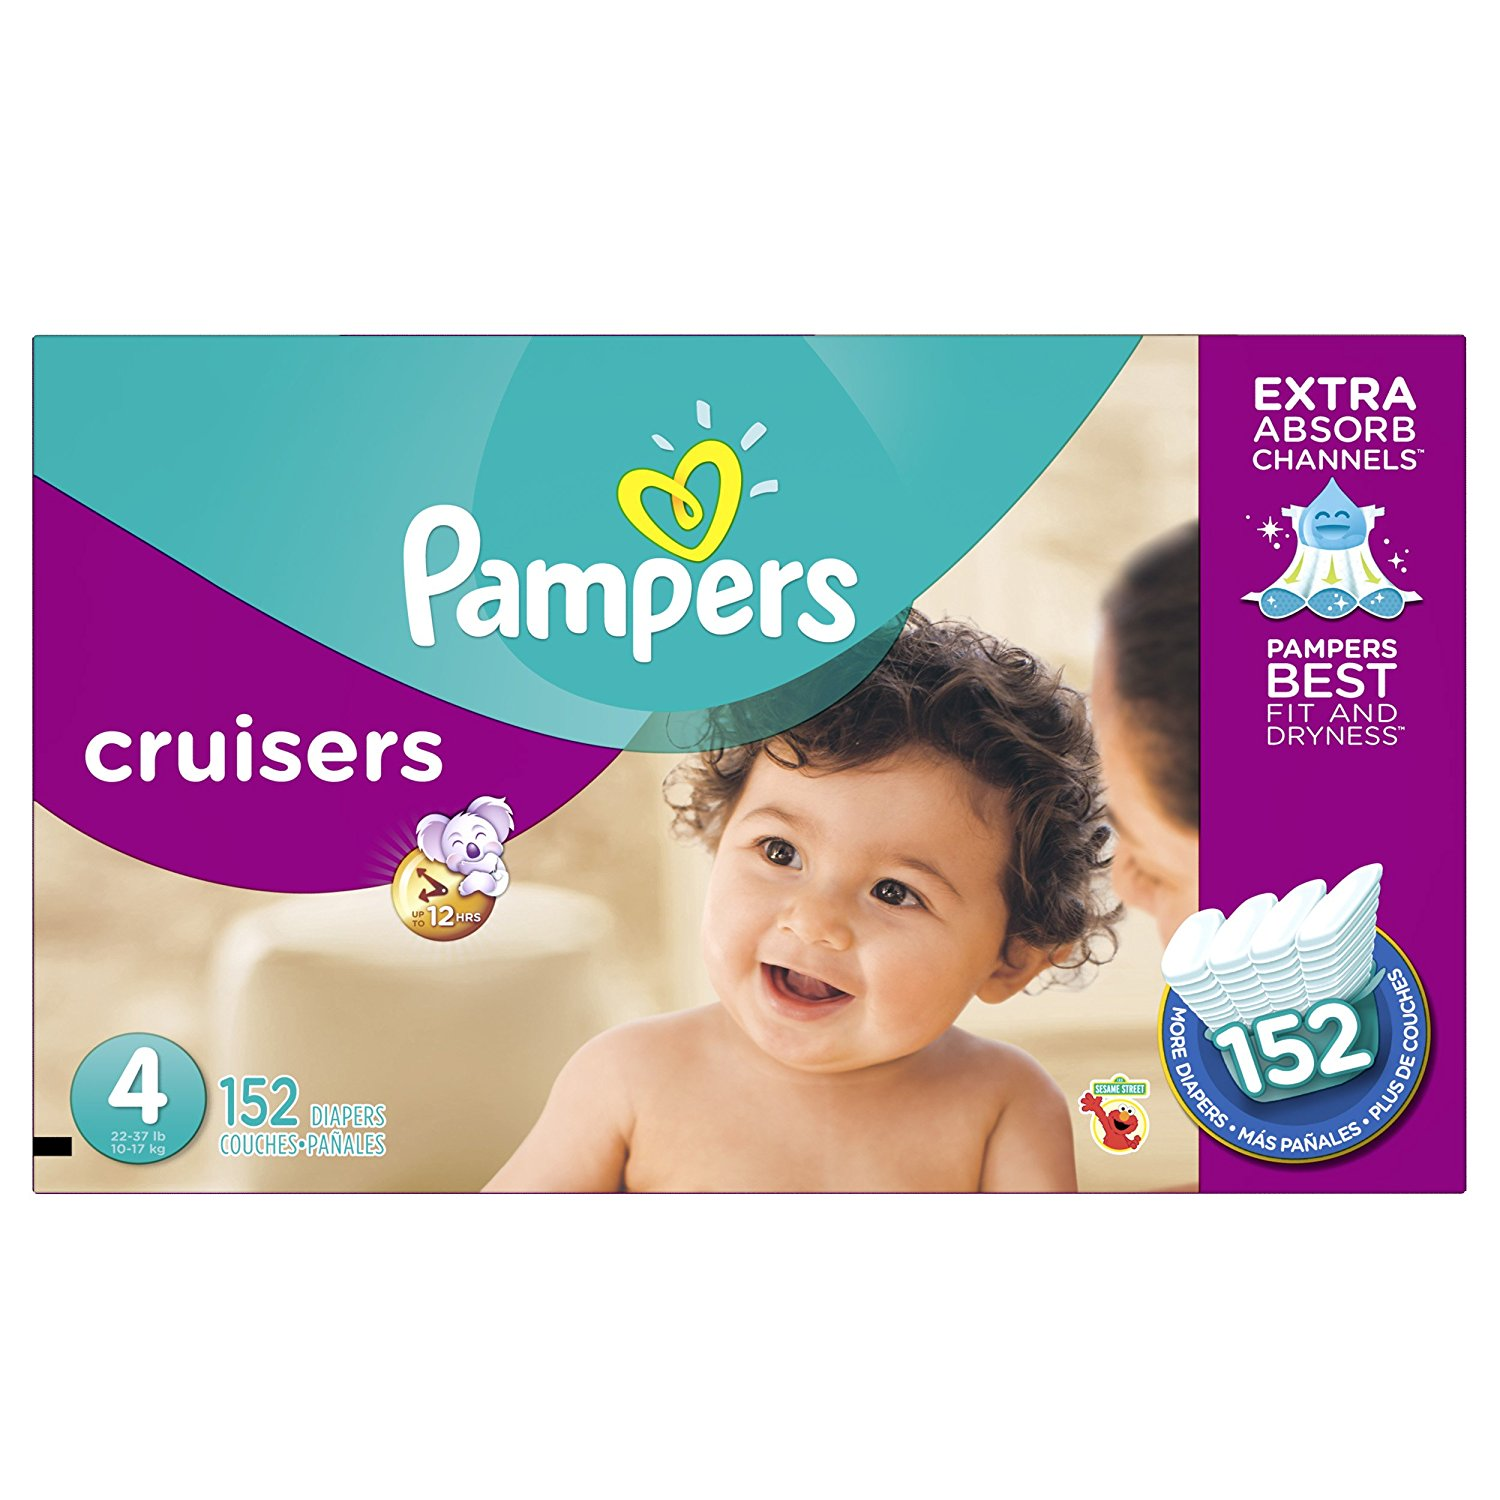 Product Description. Wrap your baby in Pampers Swaddlers Sensitive diapers, our best care for skin. Swaddlers Sensitive diapers are gentle and hypoallergenic to help maintain baby's healthy skin.